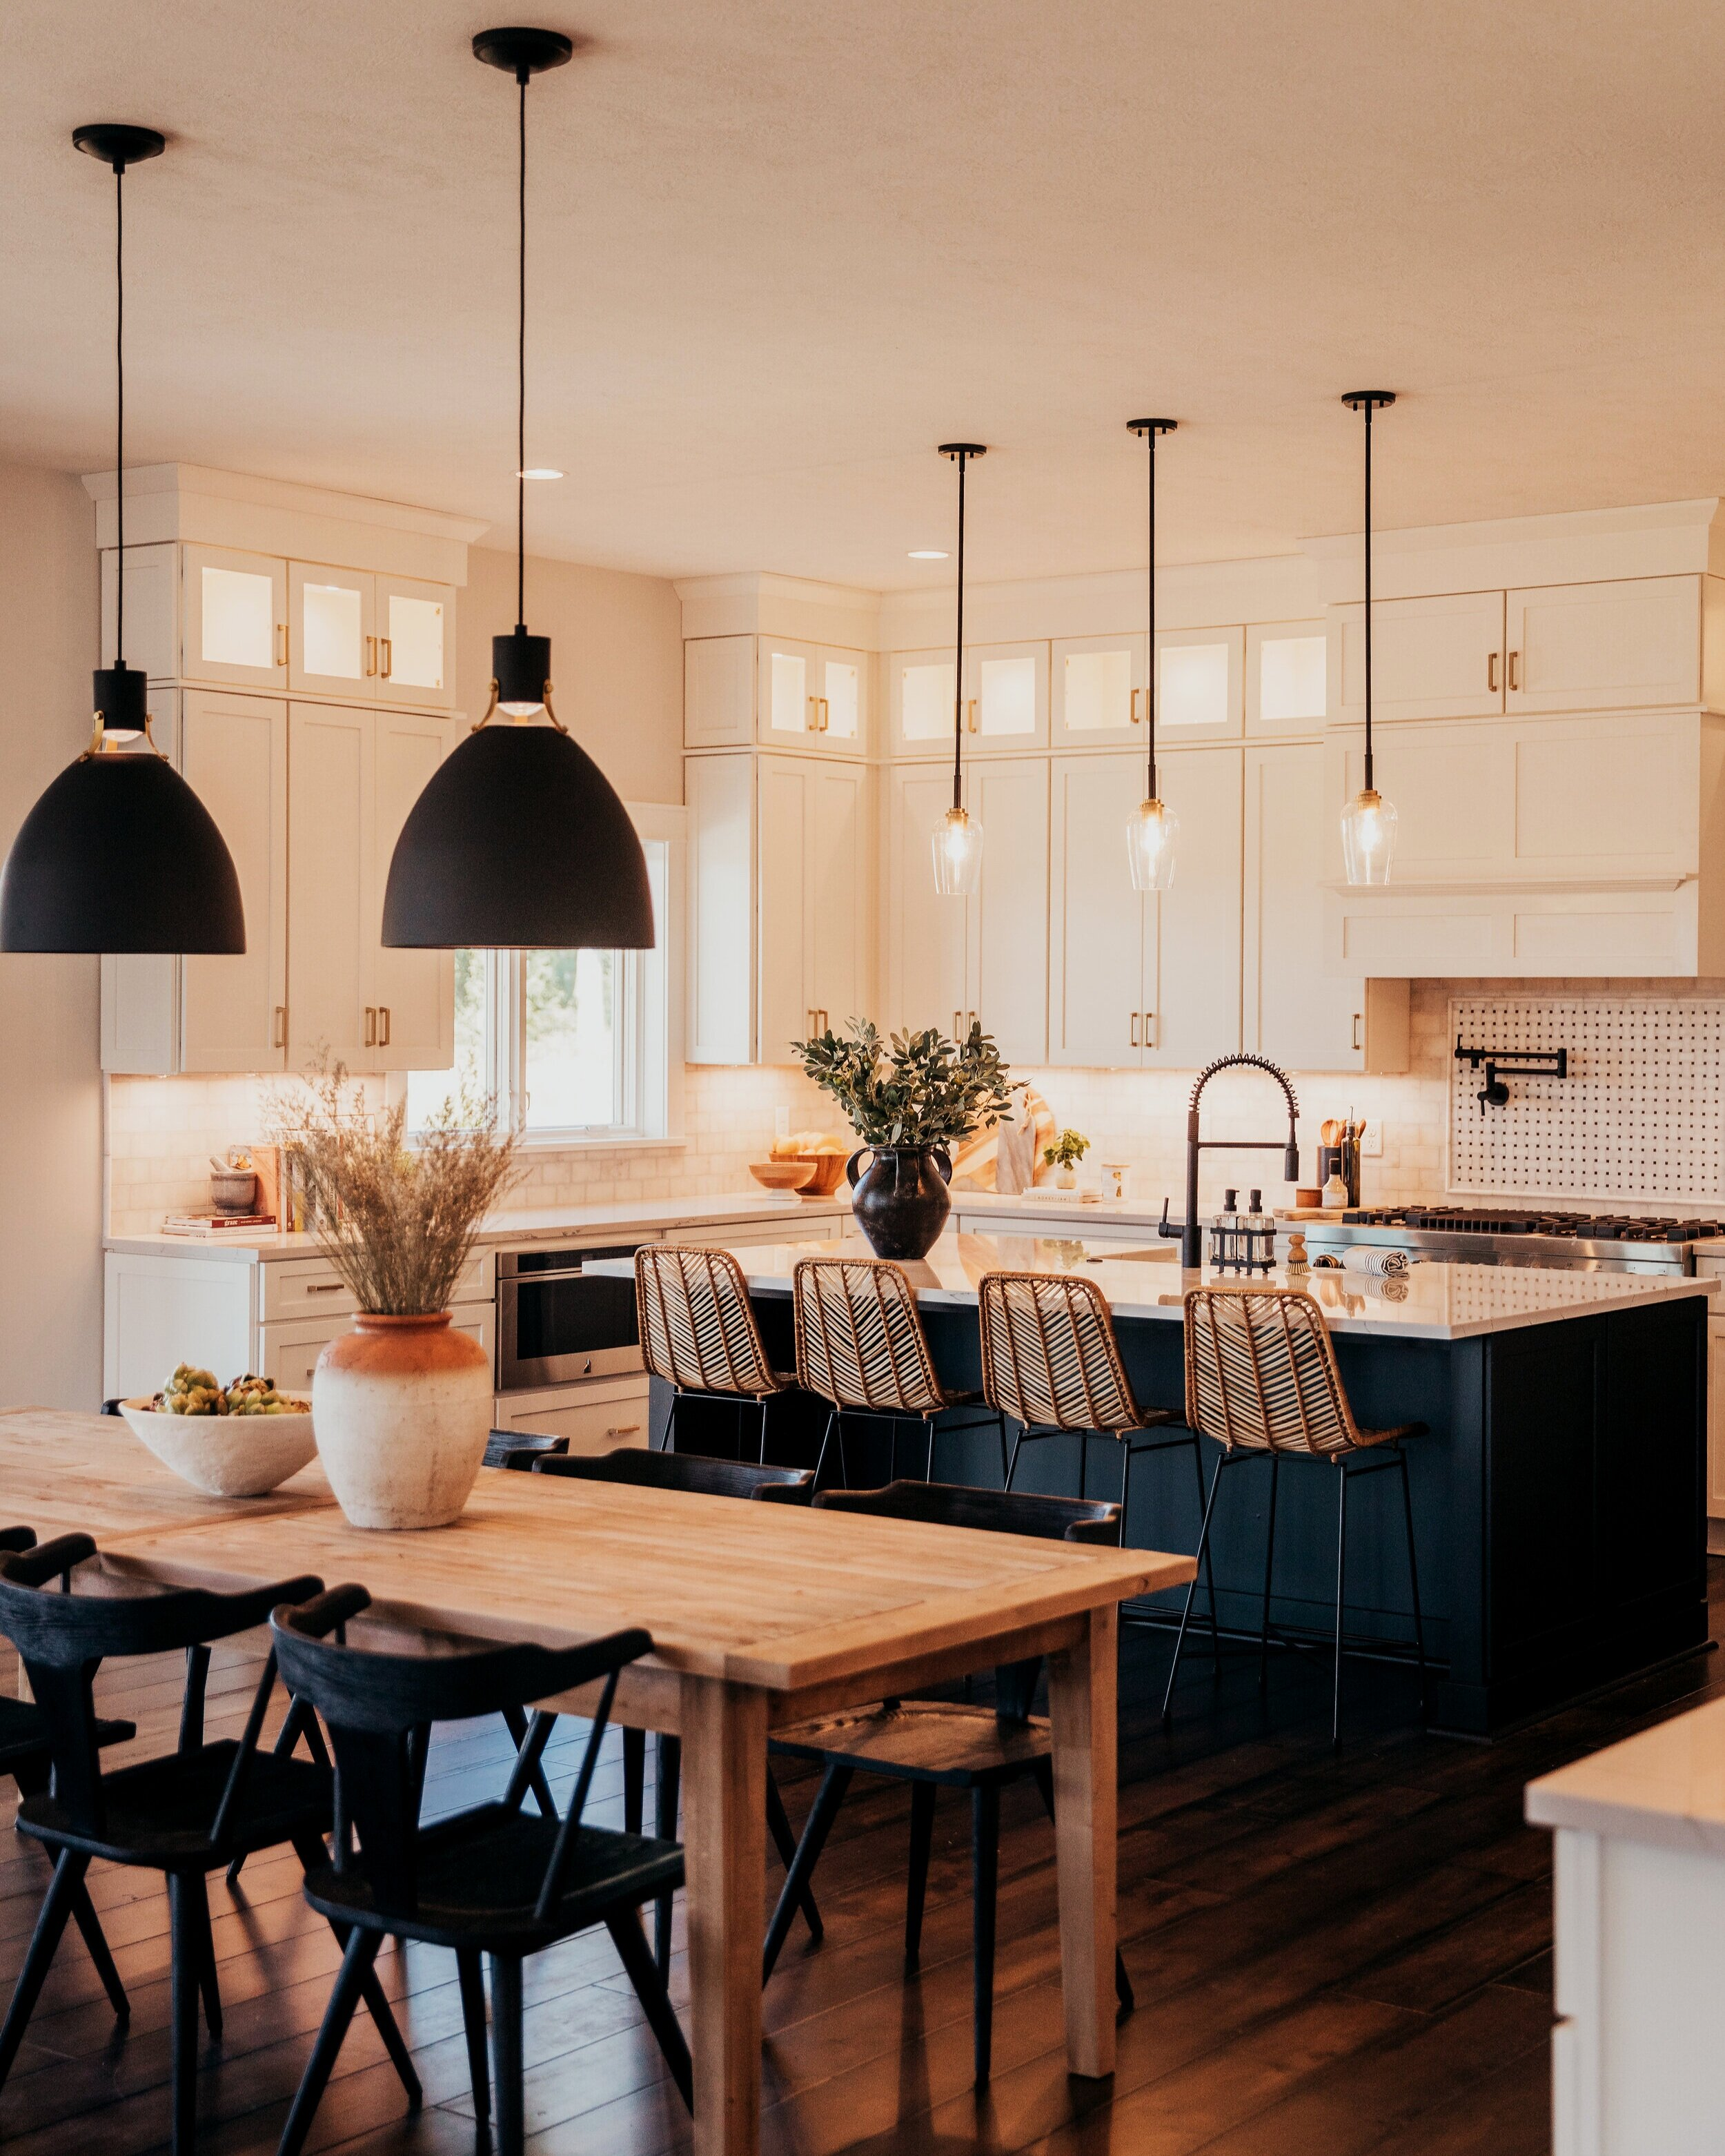 9 Tips for Designing Your Dream Kitchen — TABLE MAGAZINE